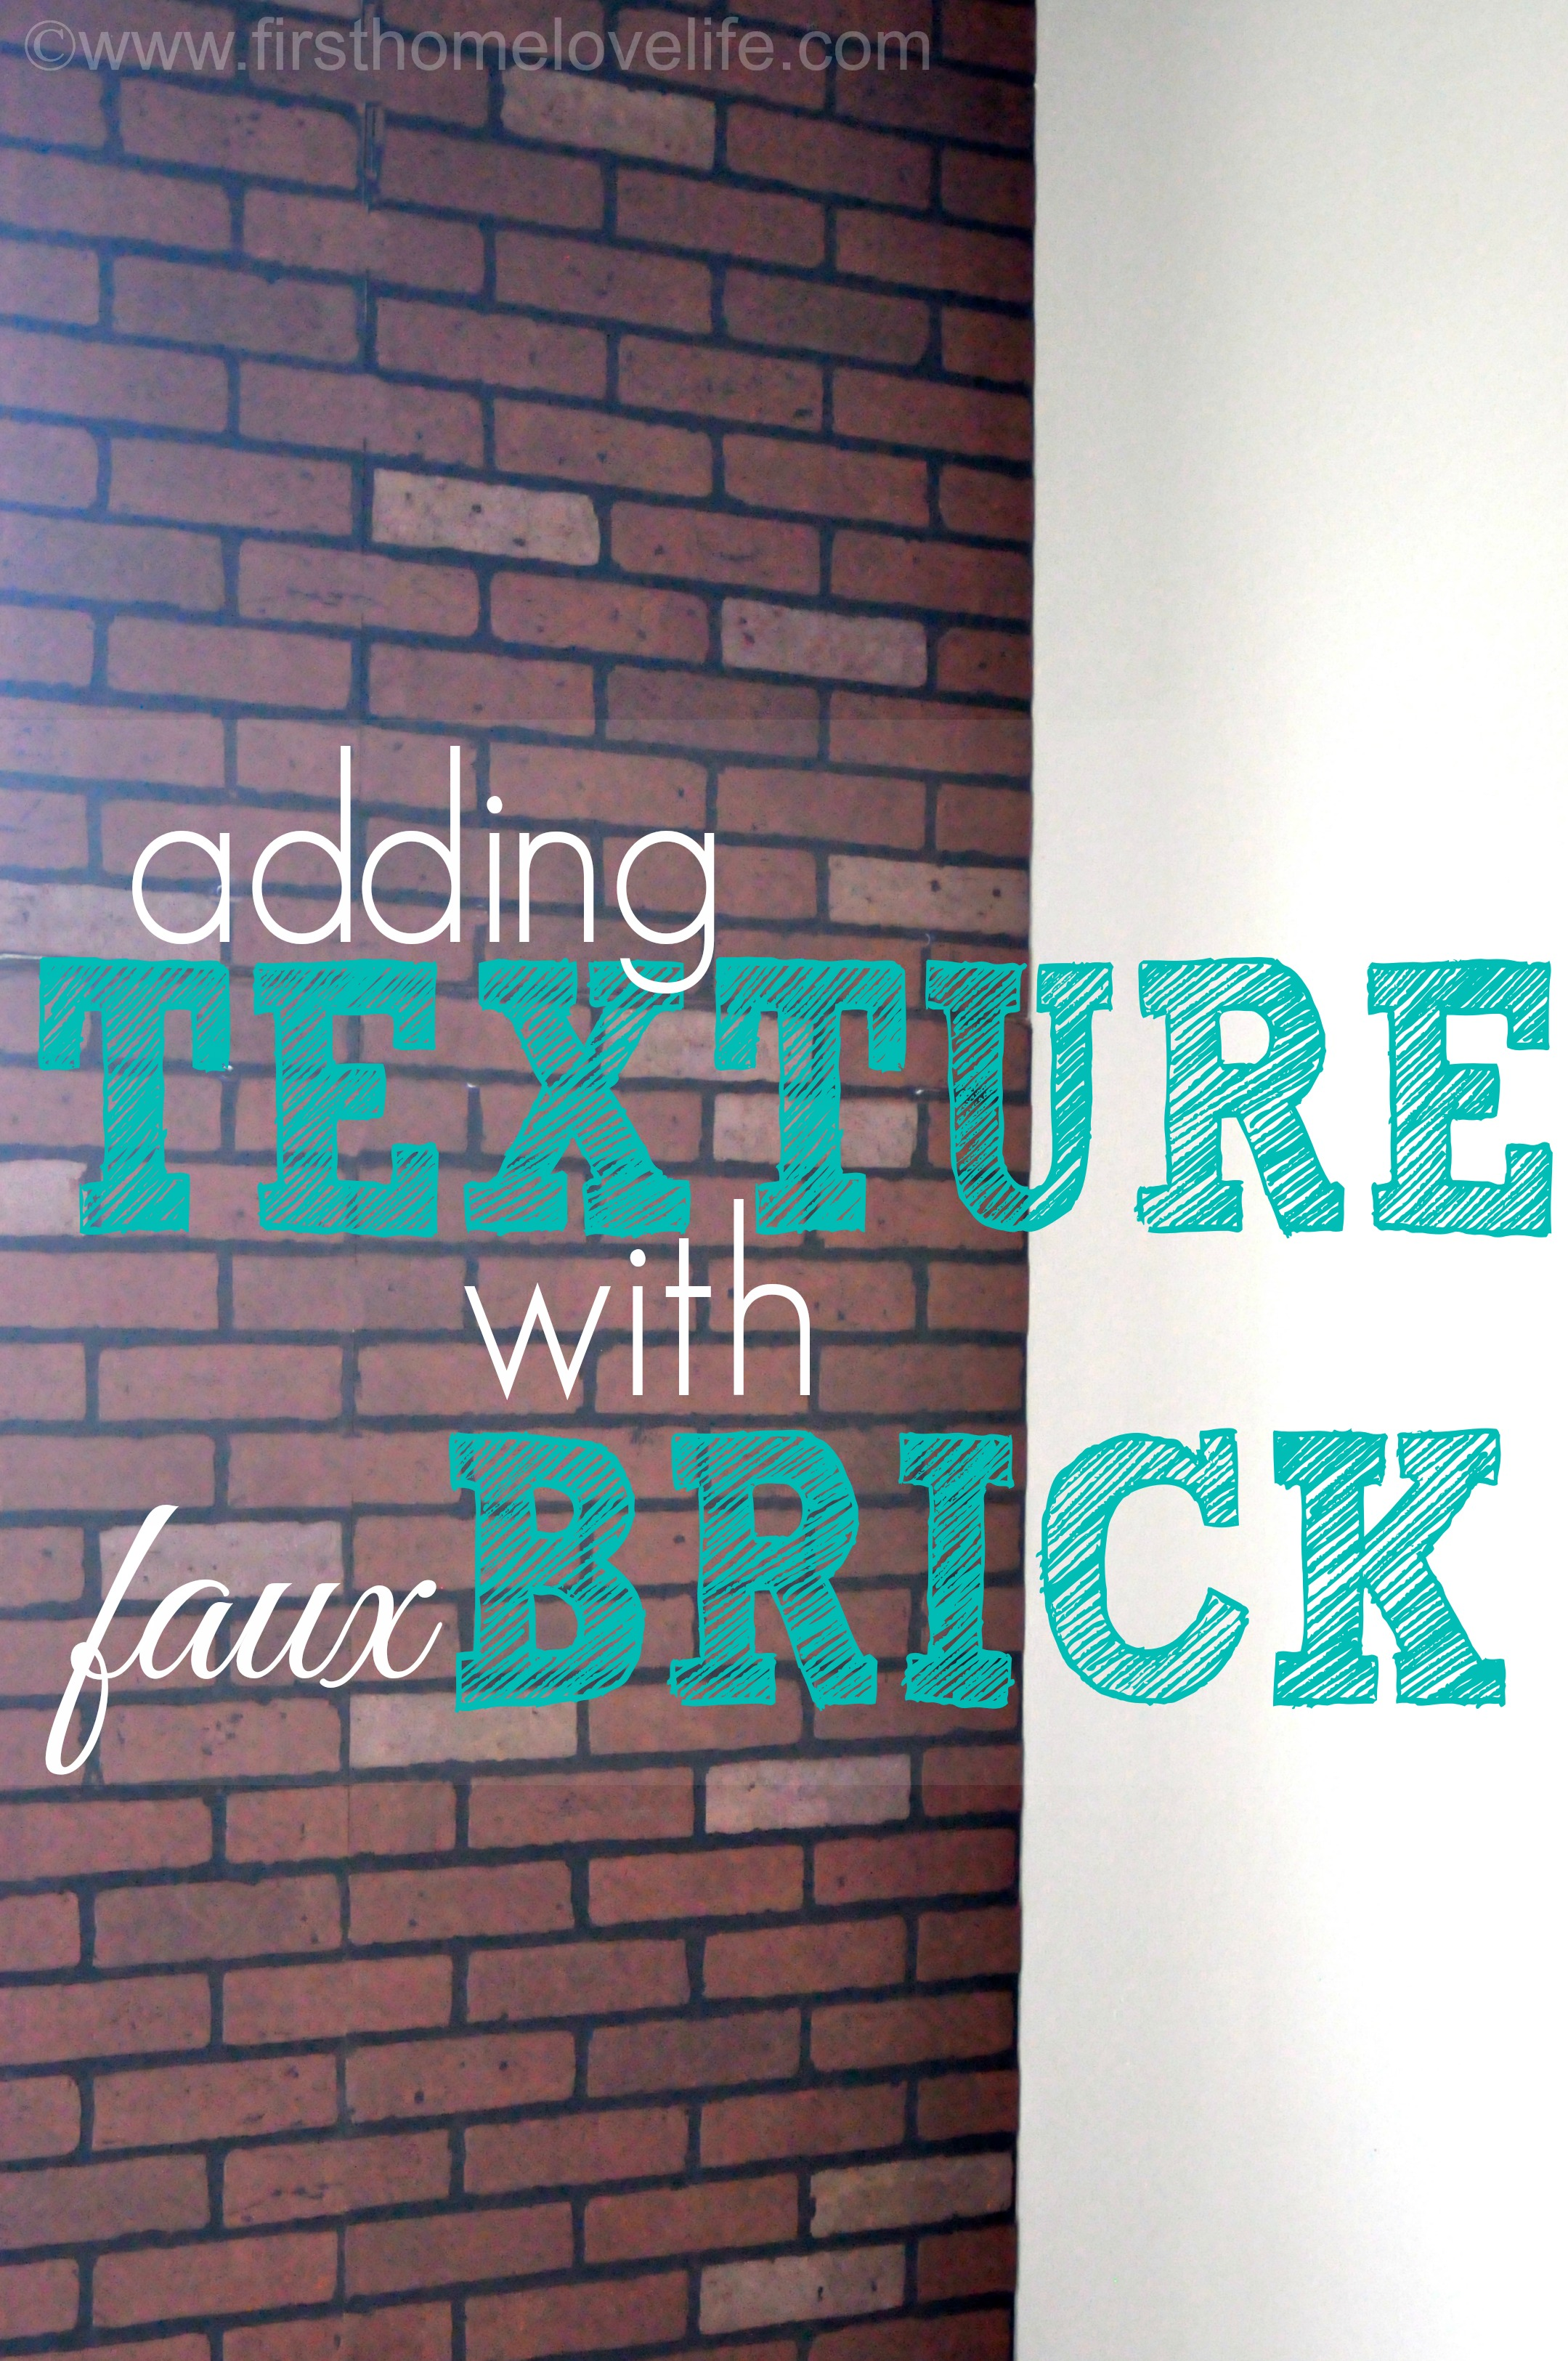 Faux Brick Ifying First Home Love Life